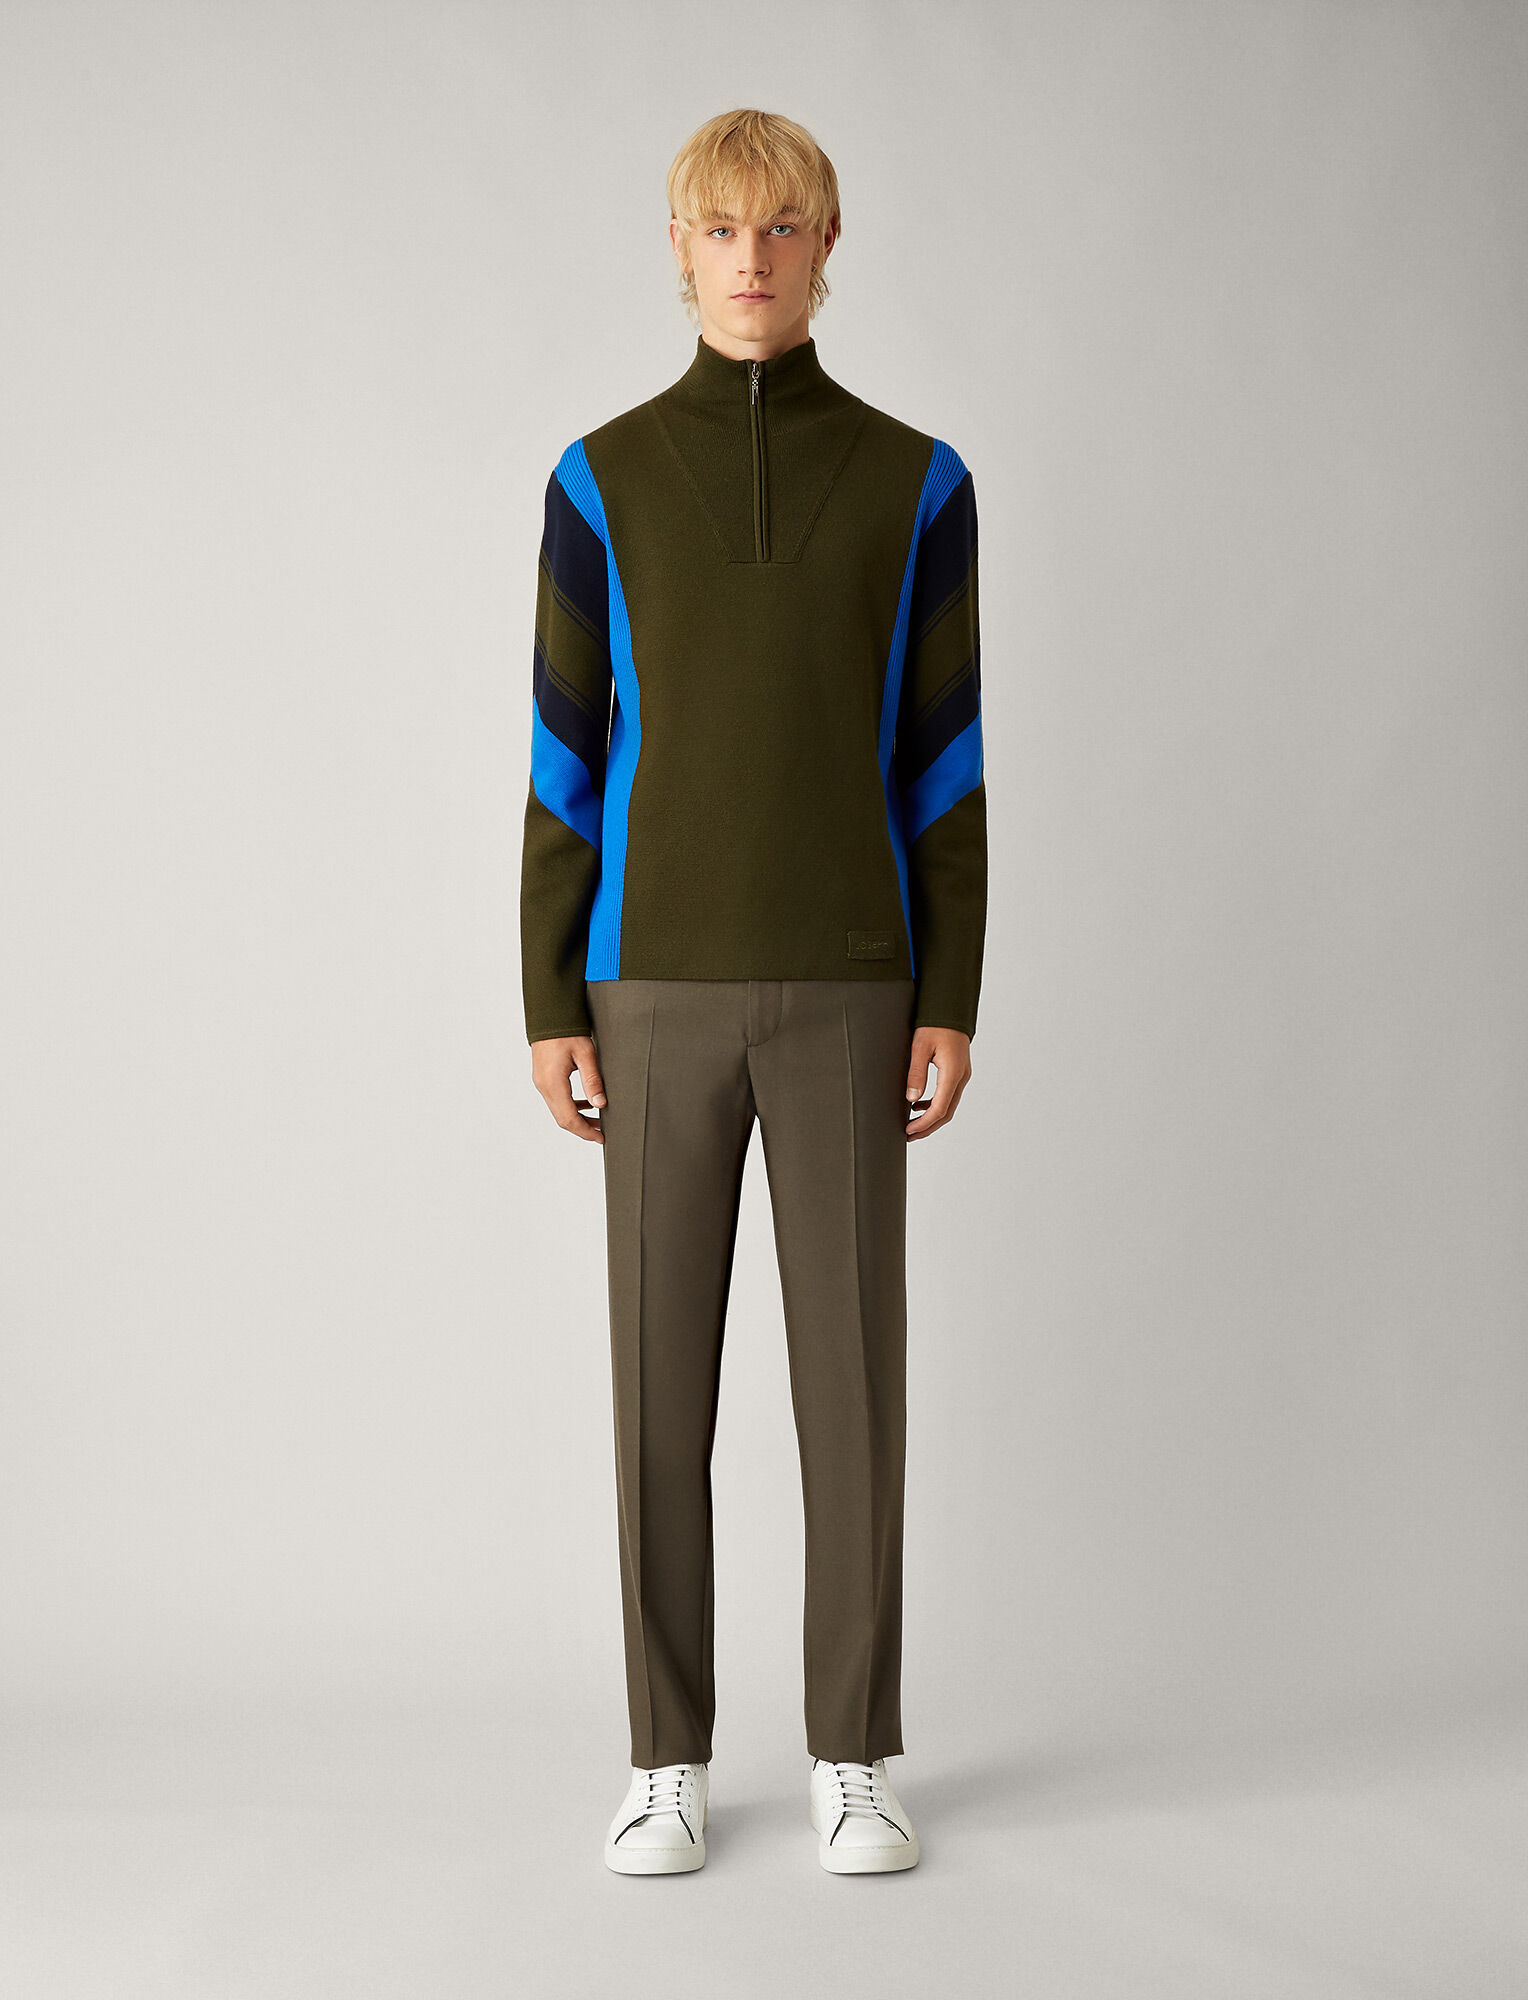 Joseph, Jack Flannel Stretch Trousers, in MILITARY